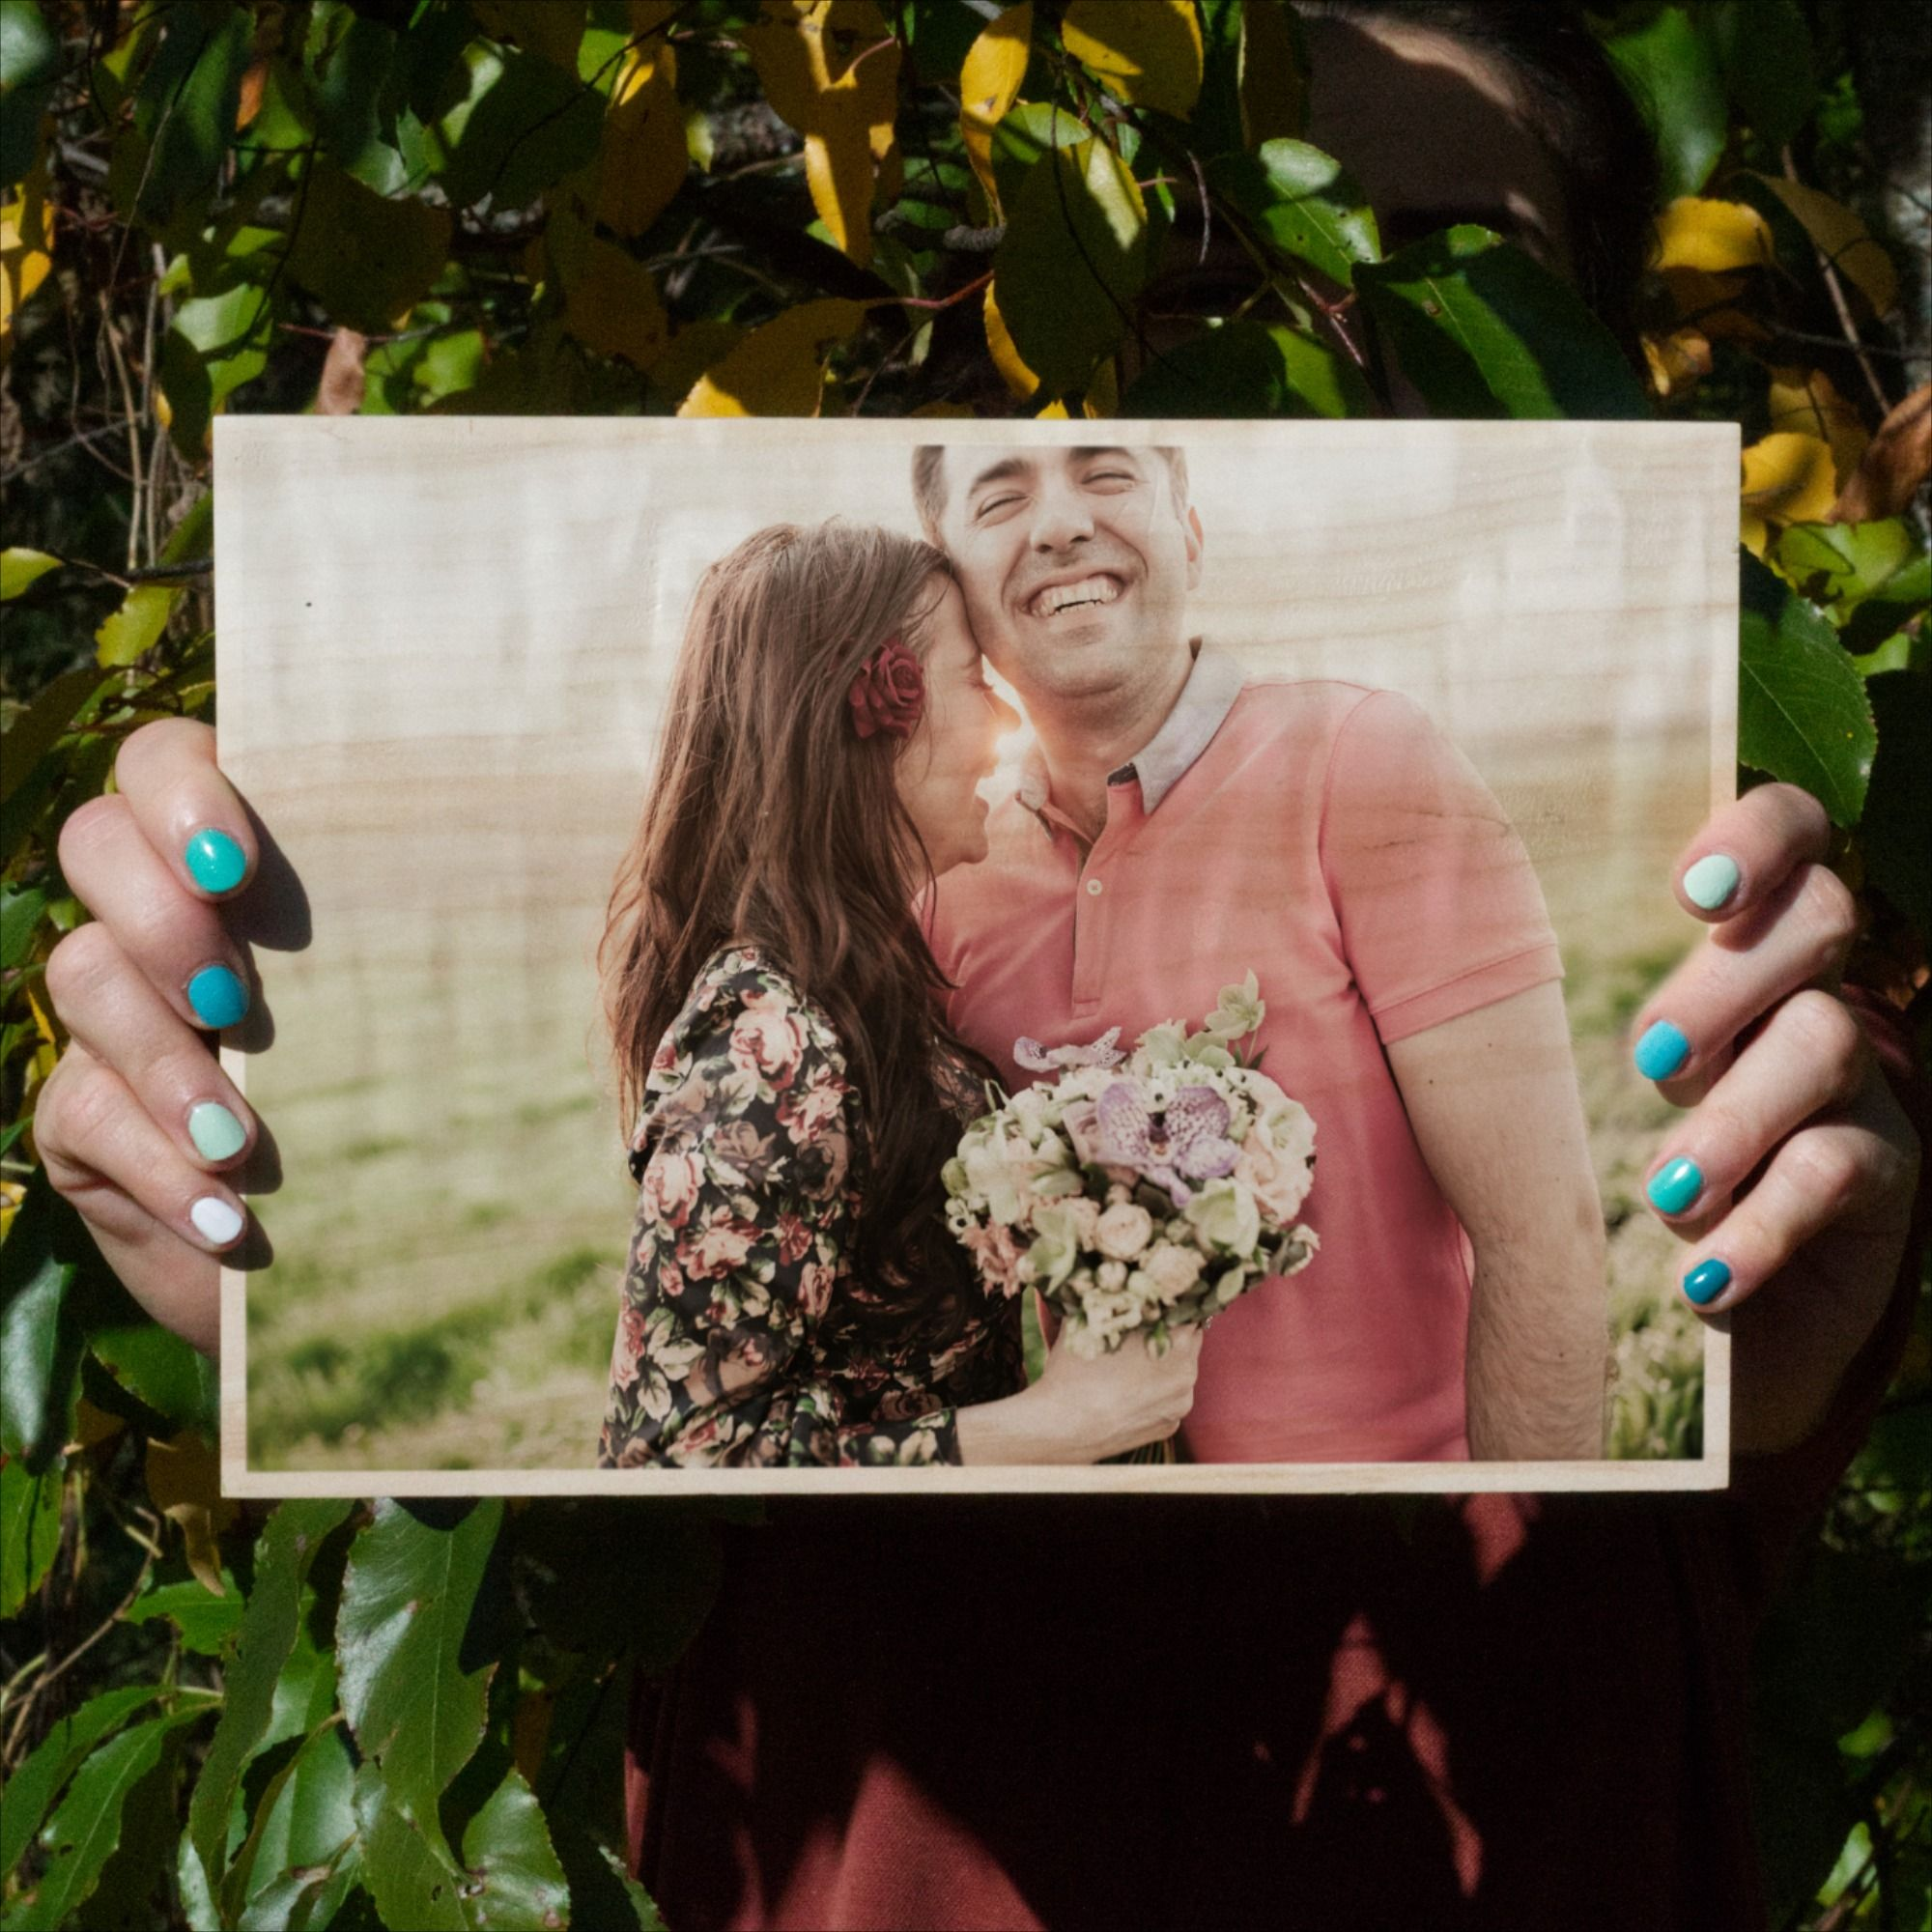 5th wedding anniversary gift for her ∙ photo on wood slice